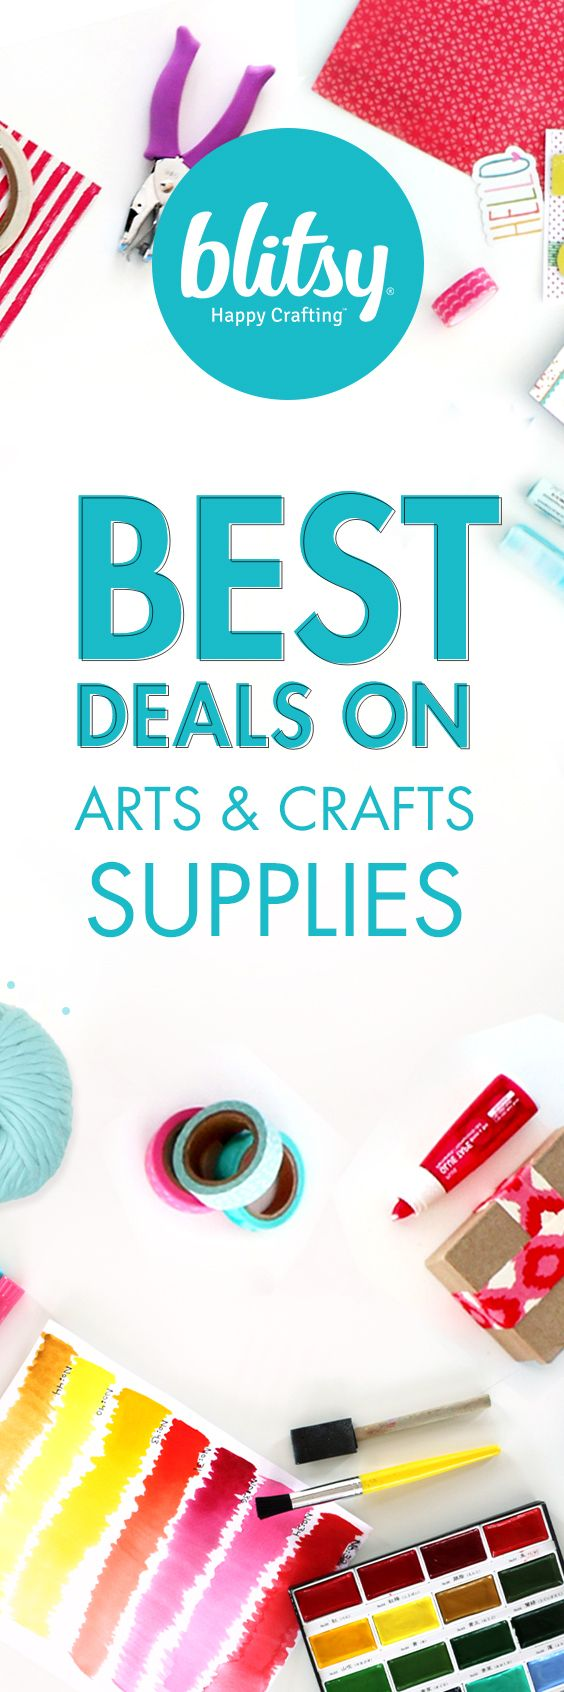 Your favorite craft supplies at unbeatable prices! Planners, paper, dies, stencils, paints, adhesives, yarn, thread - you name it we have it!